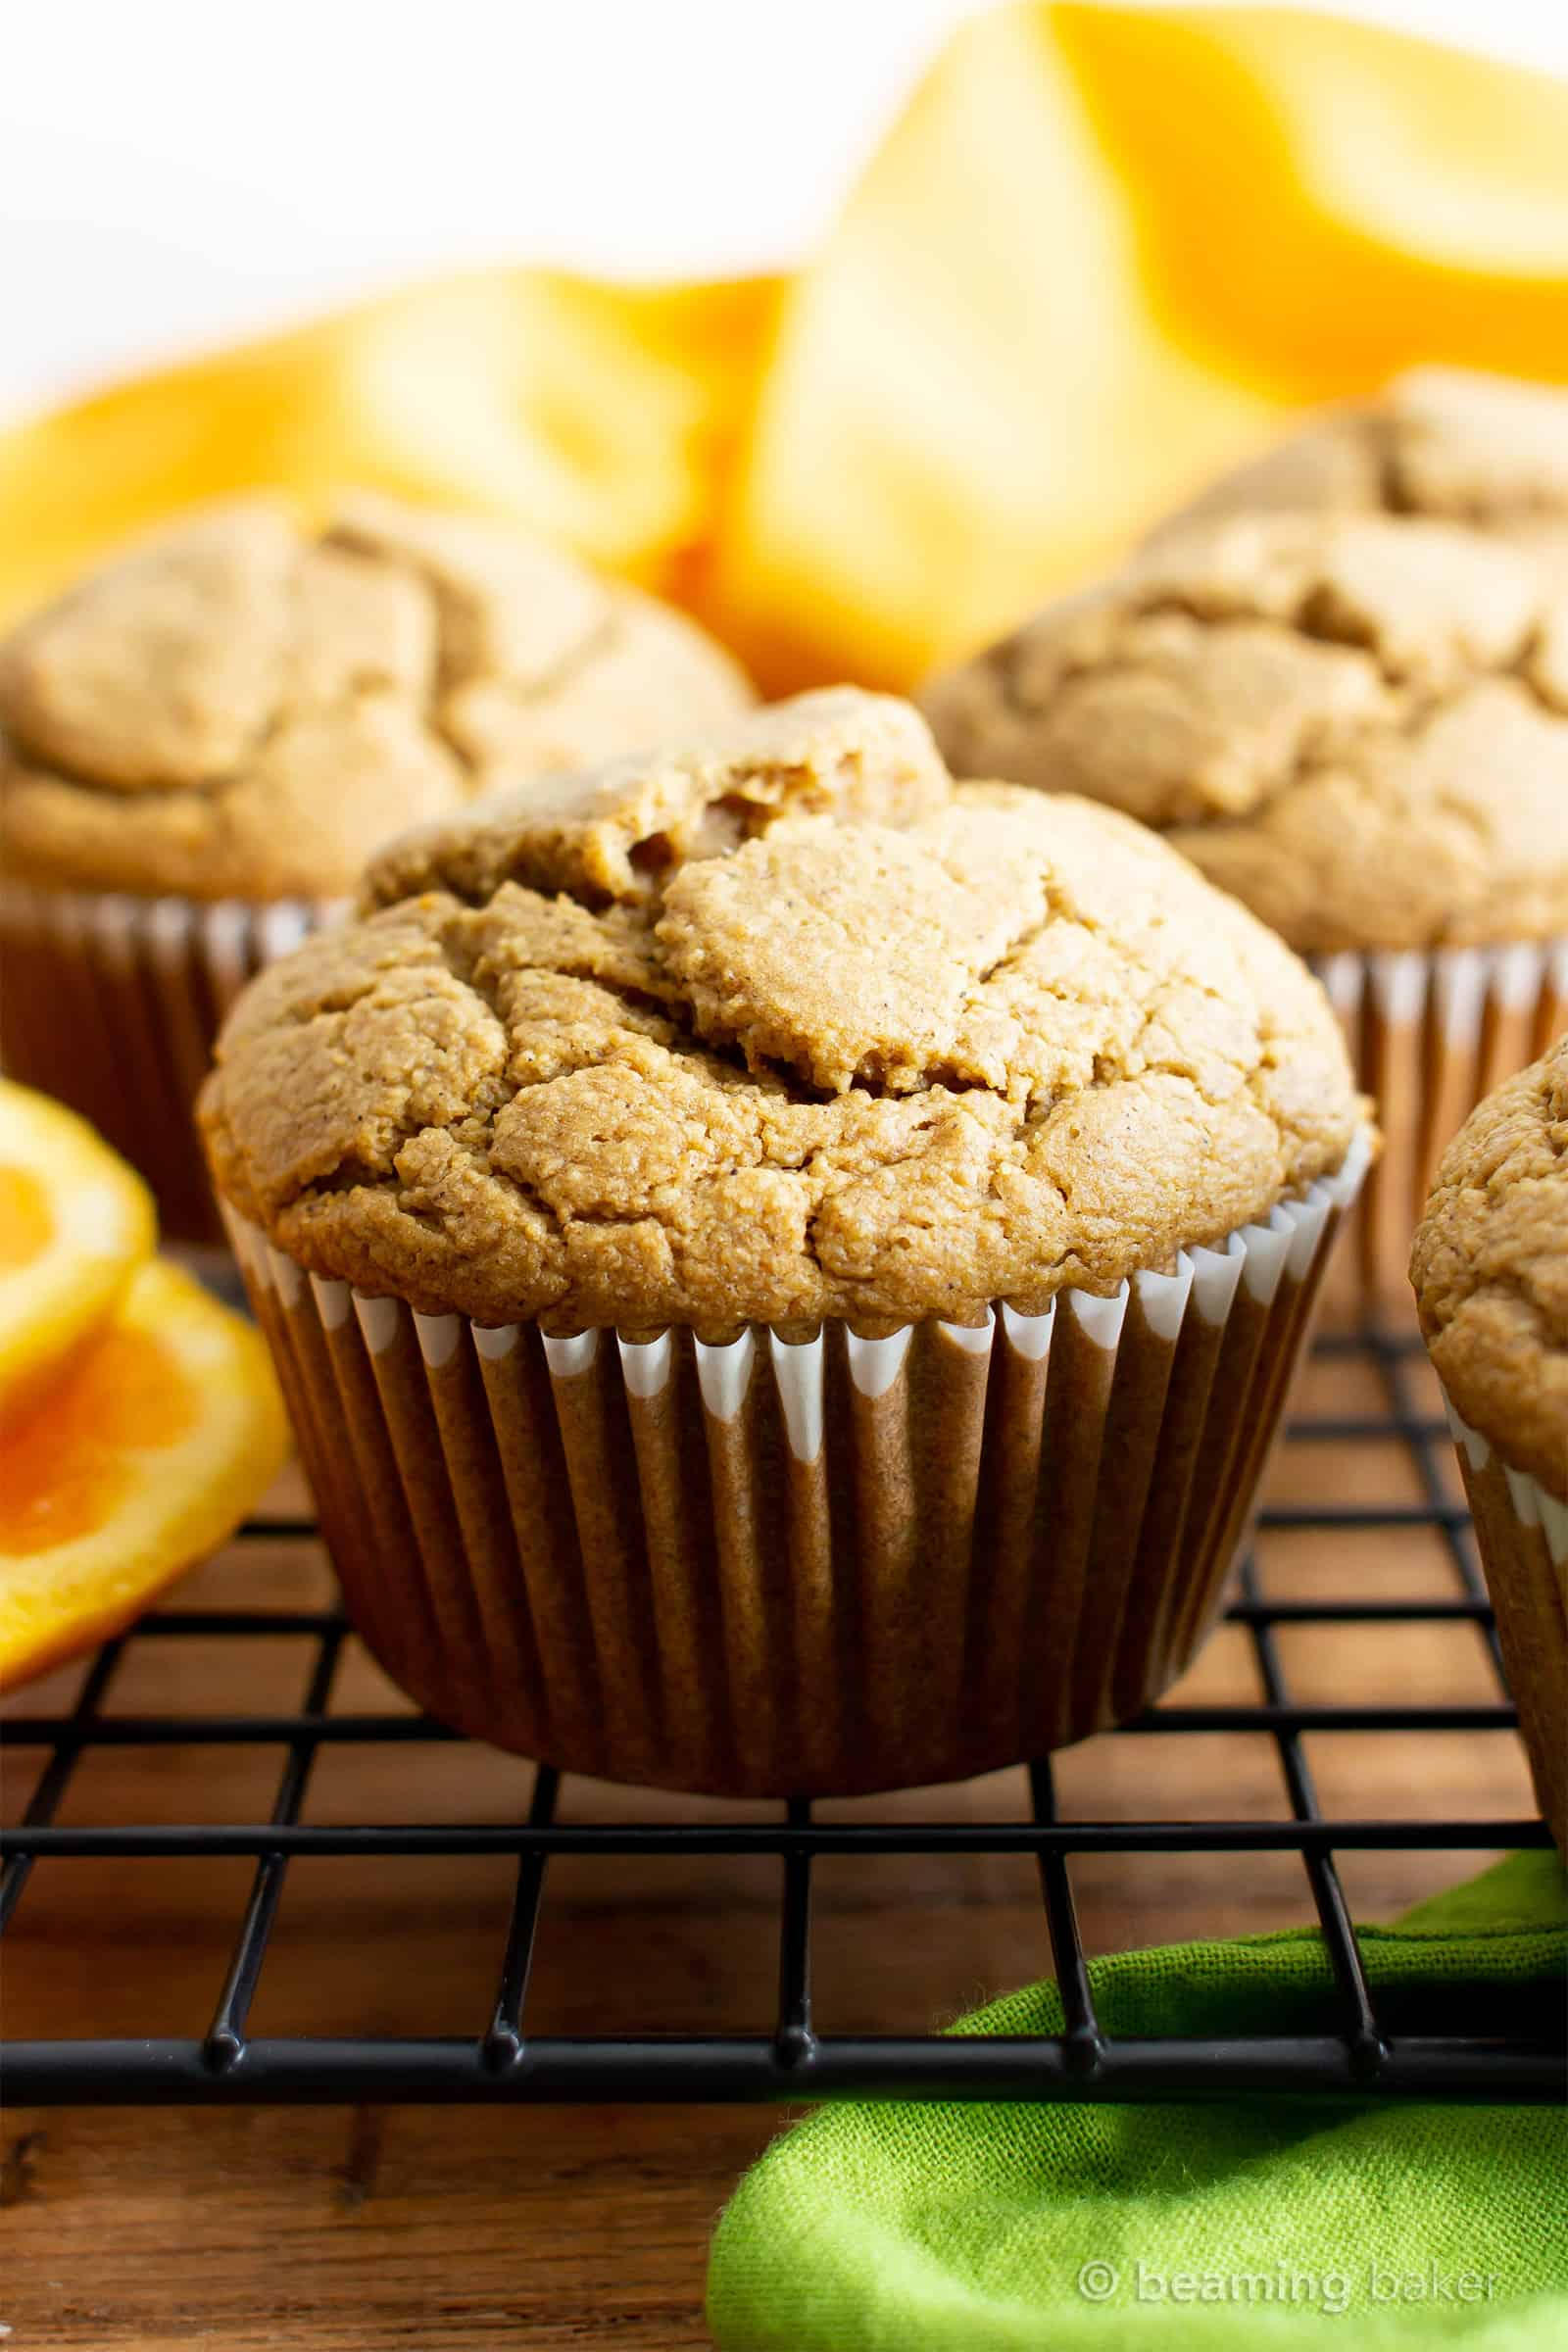 Healthy Gluten Free Orange Cardamom Muffins Recipe (V, GF): an easy, 1-bowl recipe for soft, fluffy orange muffins with a hint of delicious cardamom flavor. Made with healthy ingredients. #Vegan #GlutenFree #DairyFree #HealthyMuffins #GlutenFreeVegan #BeamingBaker | Recipe at BeamingBaker.com